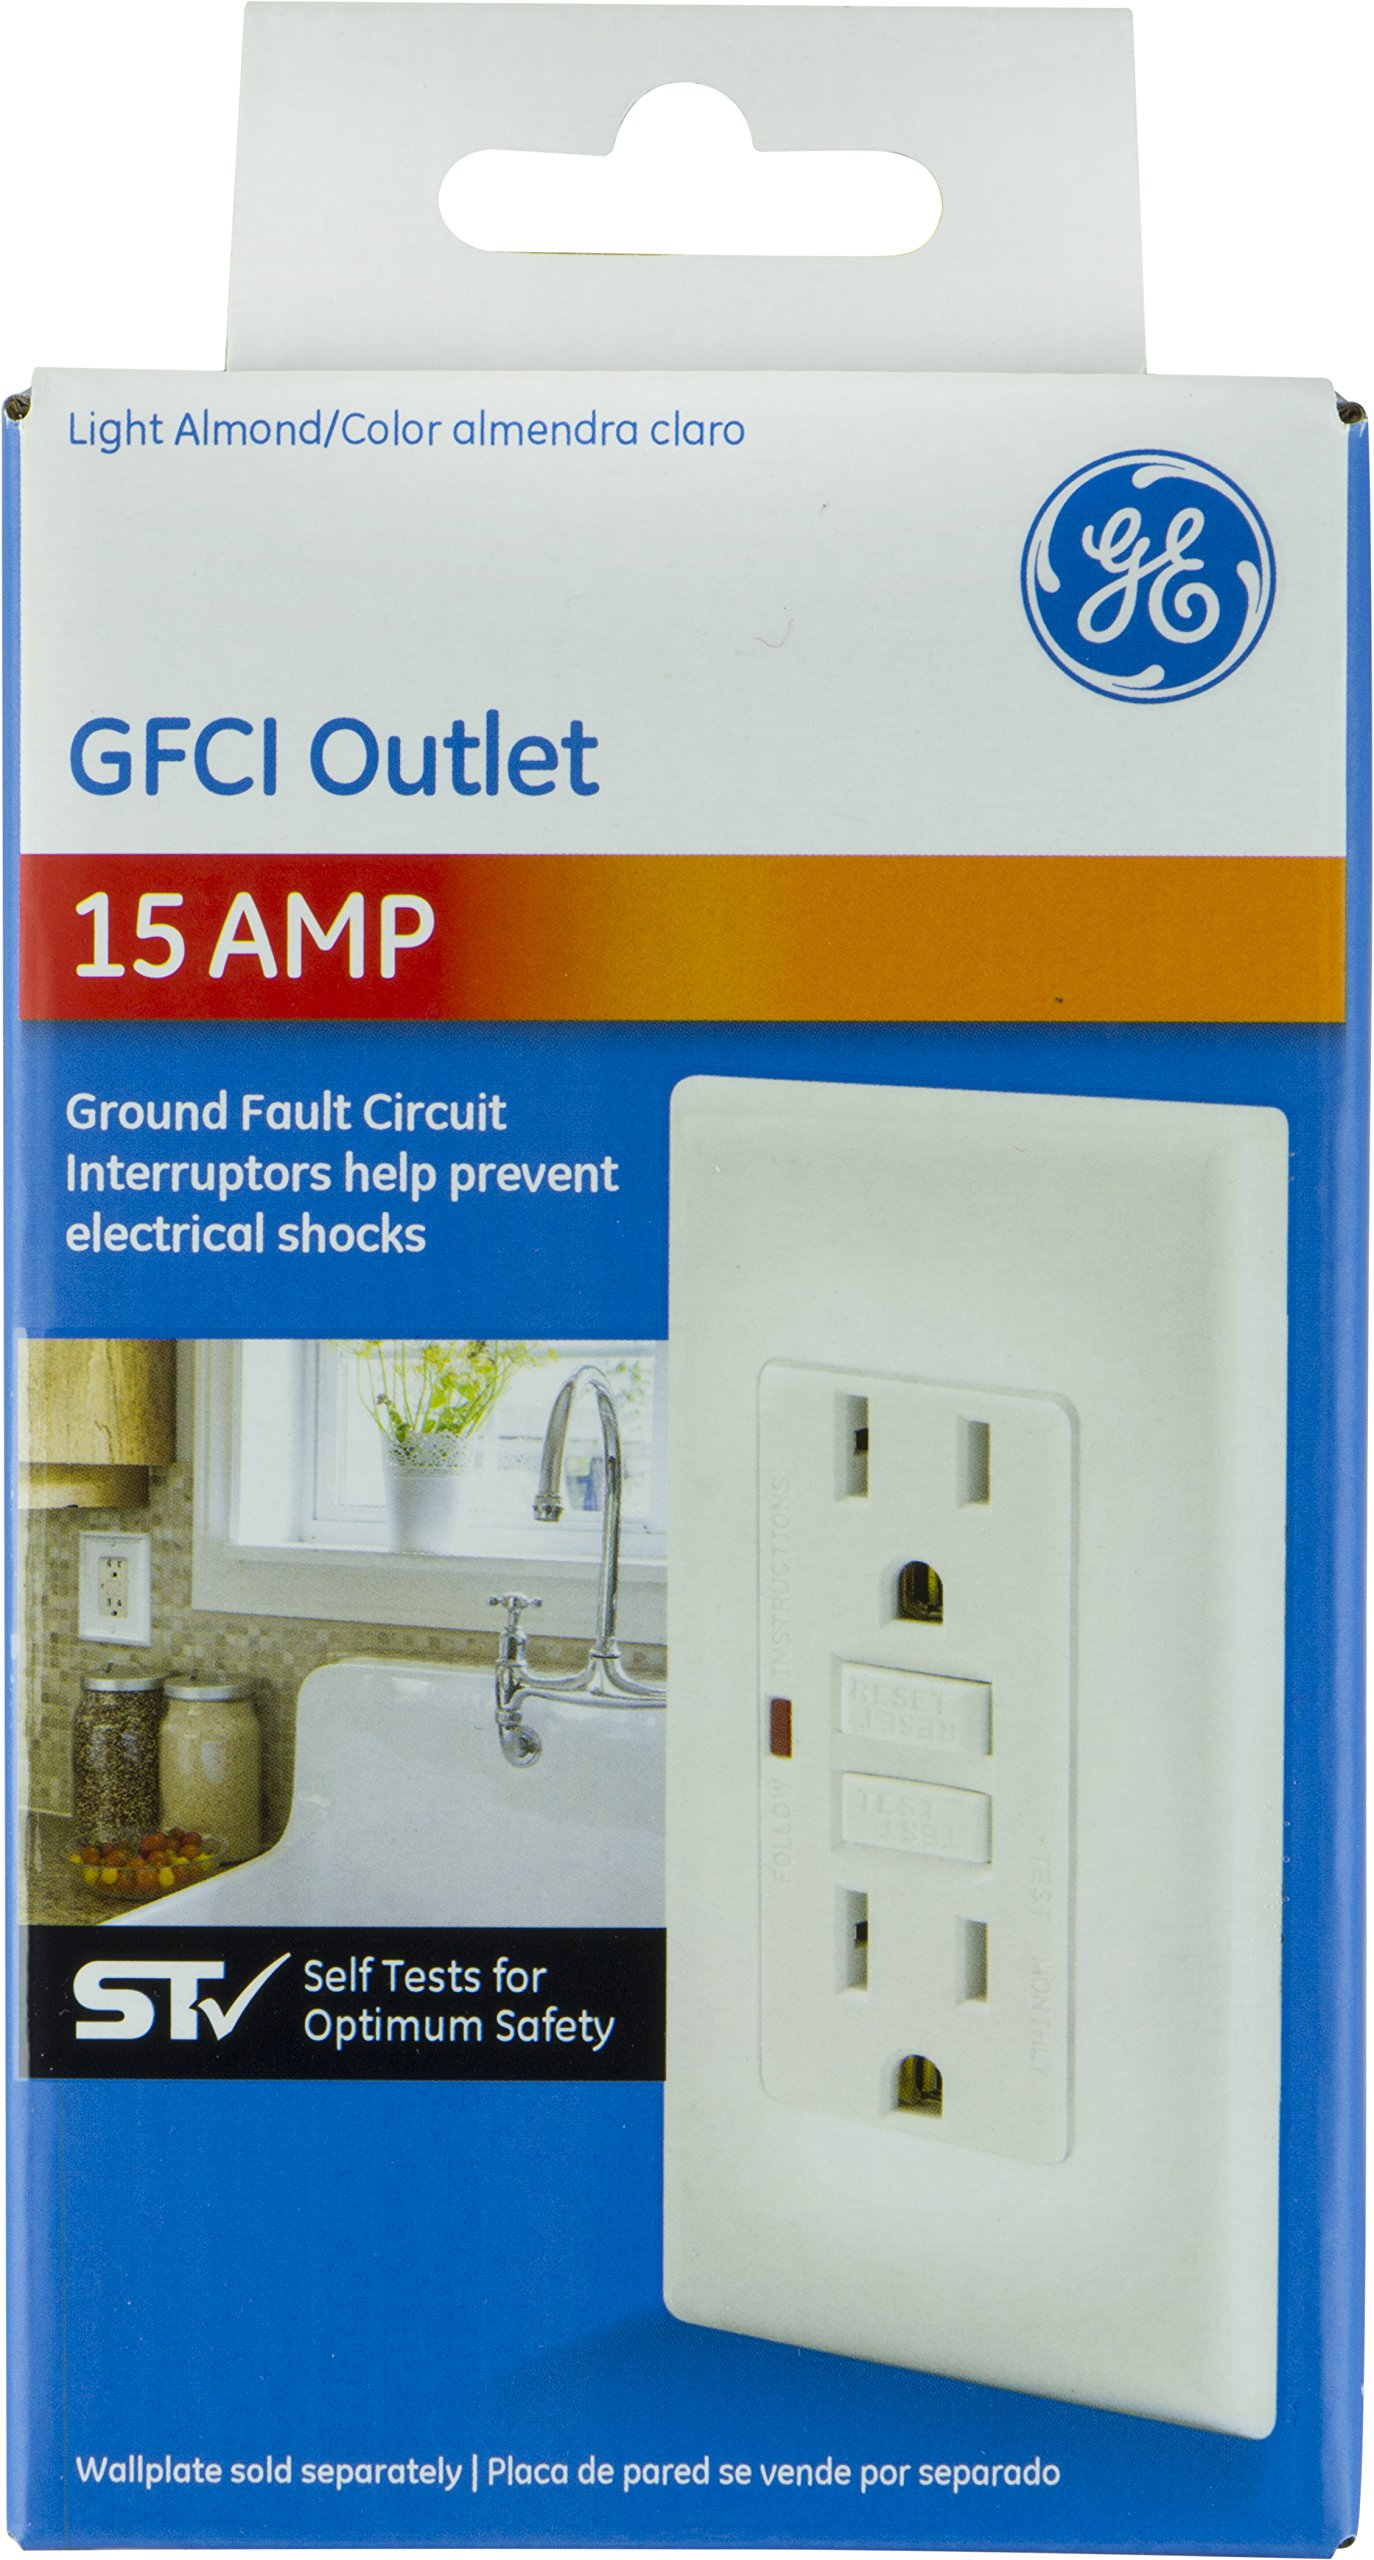 Cheap Gfci Outlet Test Find Deals On Line At How To Ground Fault Circuit Interrupter Get Quotations Ge 32074 15a Self Light Almond